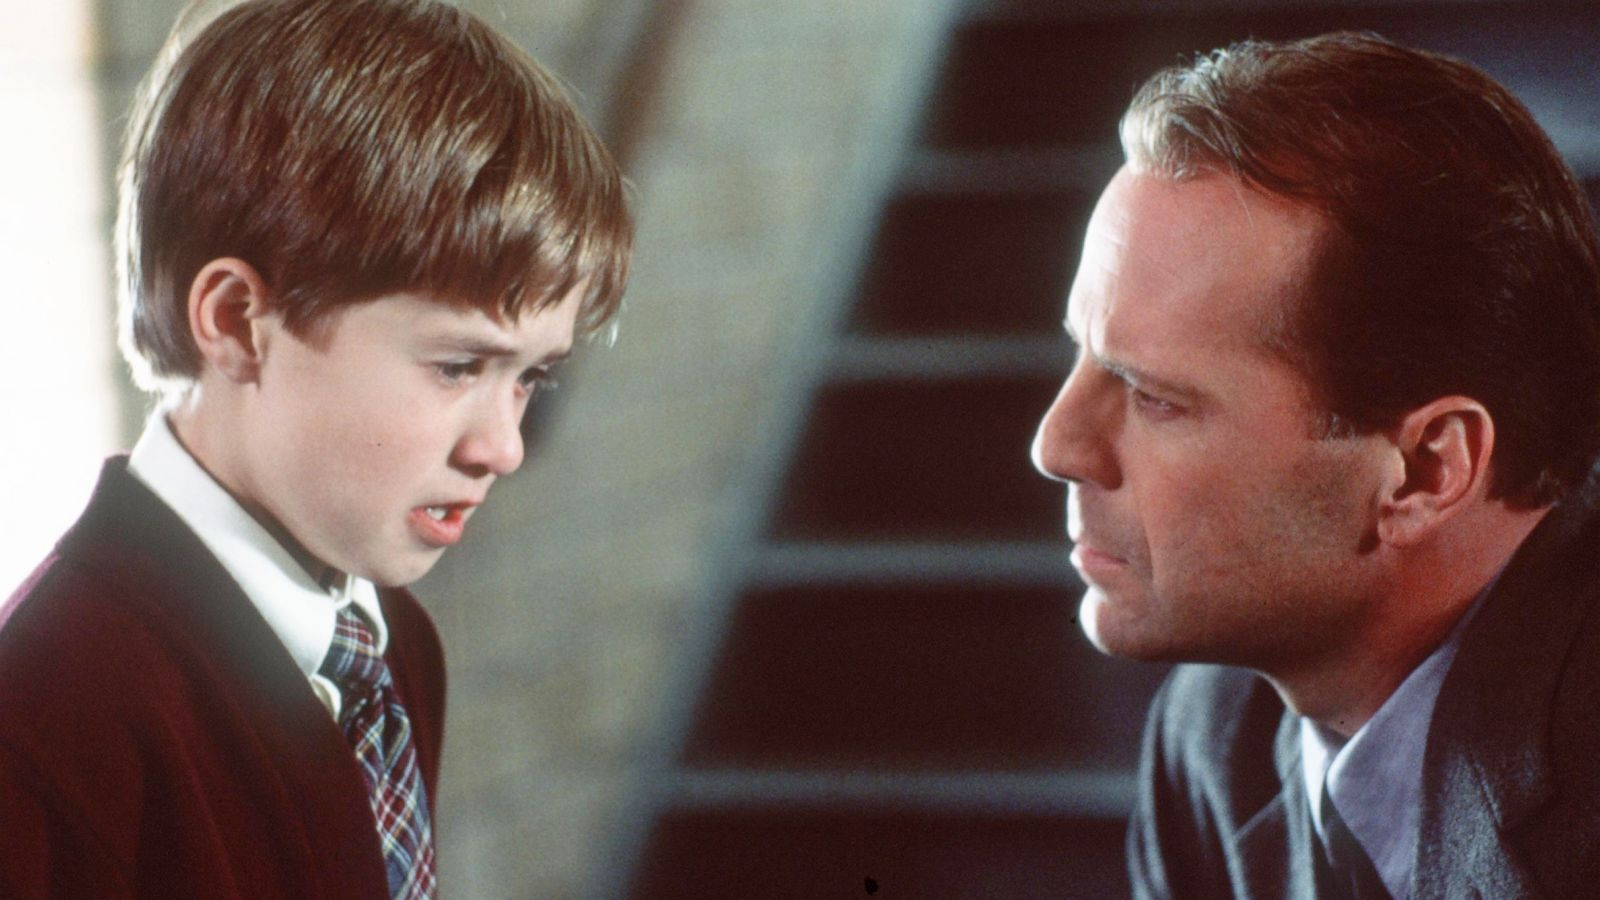 What Ever Happened to Haley Joel Osment From 'The Sixth Sense' - ABC